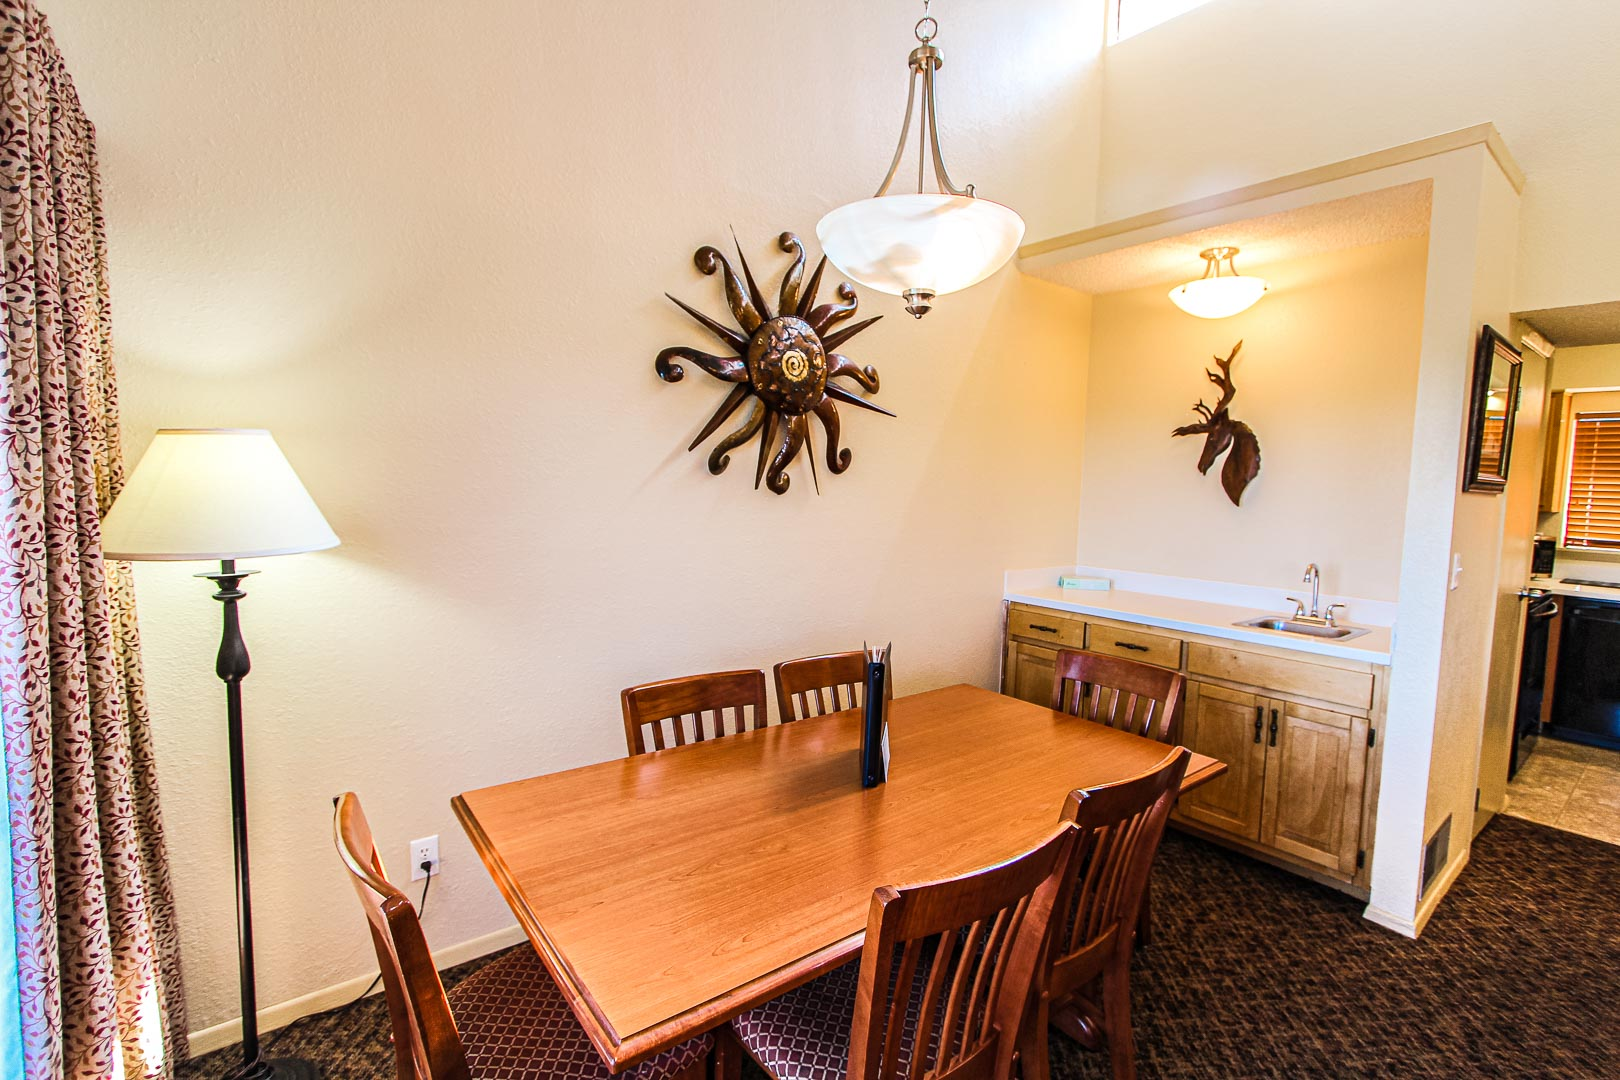 A charming dining room area at VRI's Crown Point Condominiums in New Mexico.